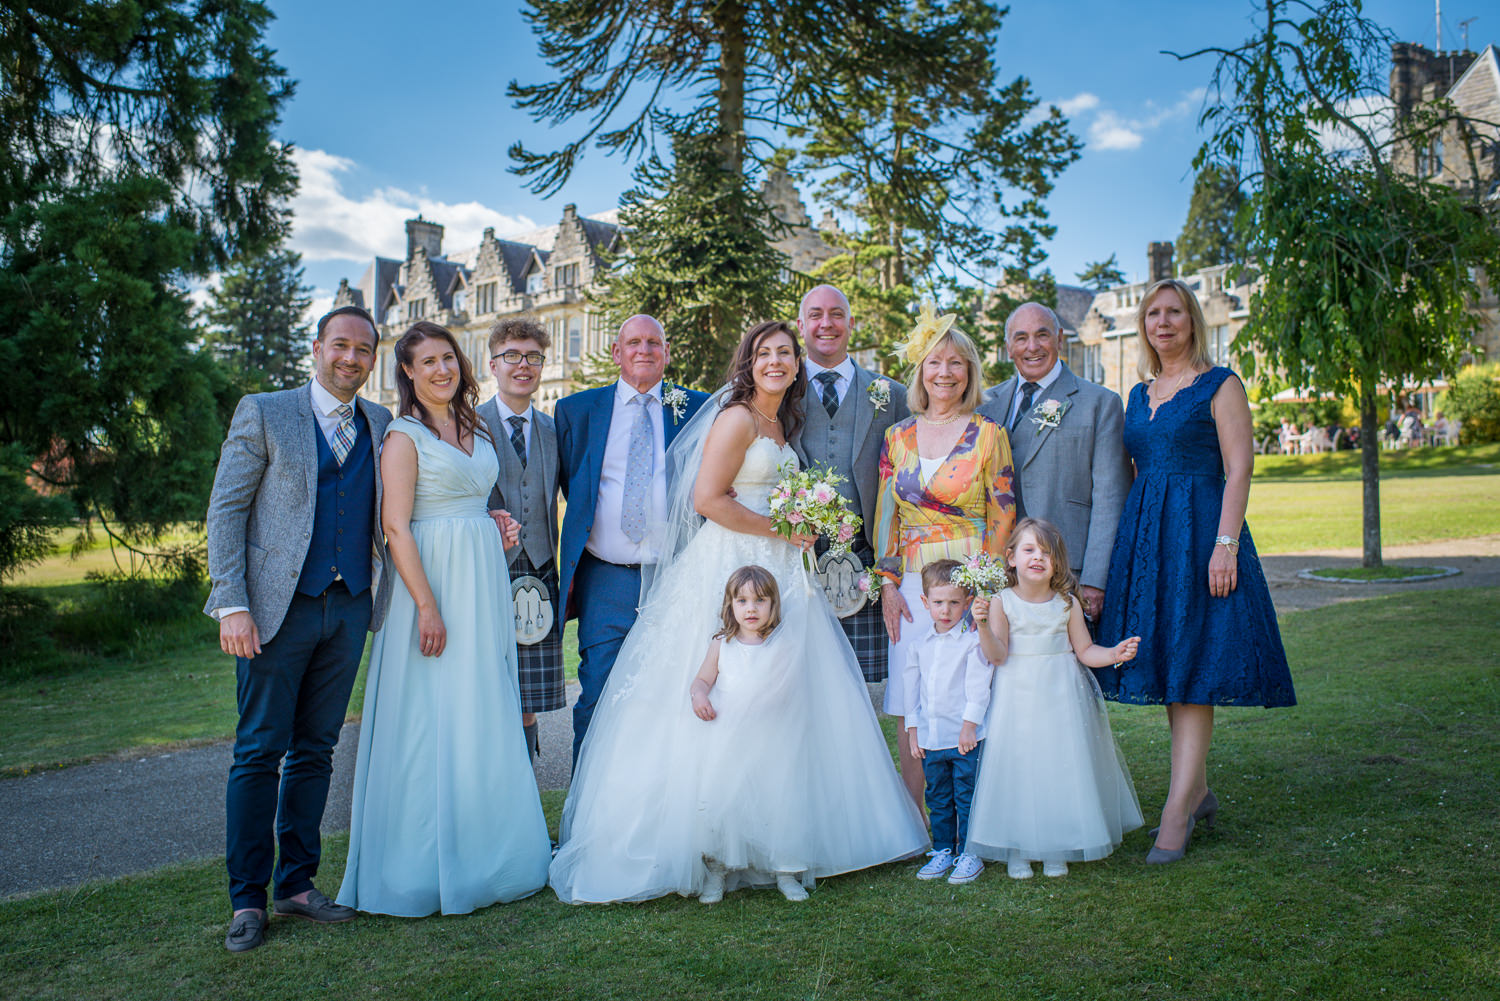 Family photograph at Ashdown Park Hotel